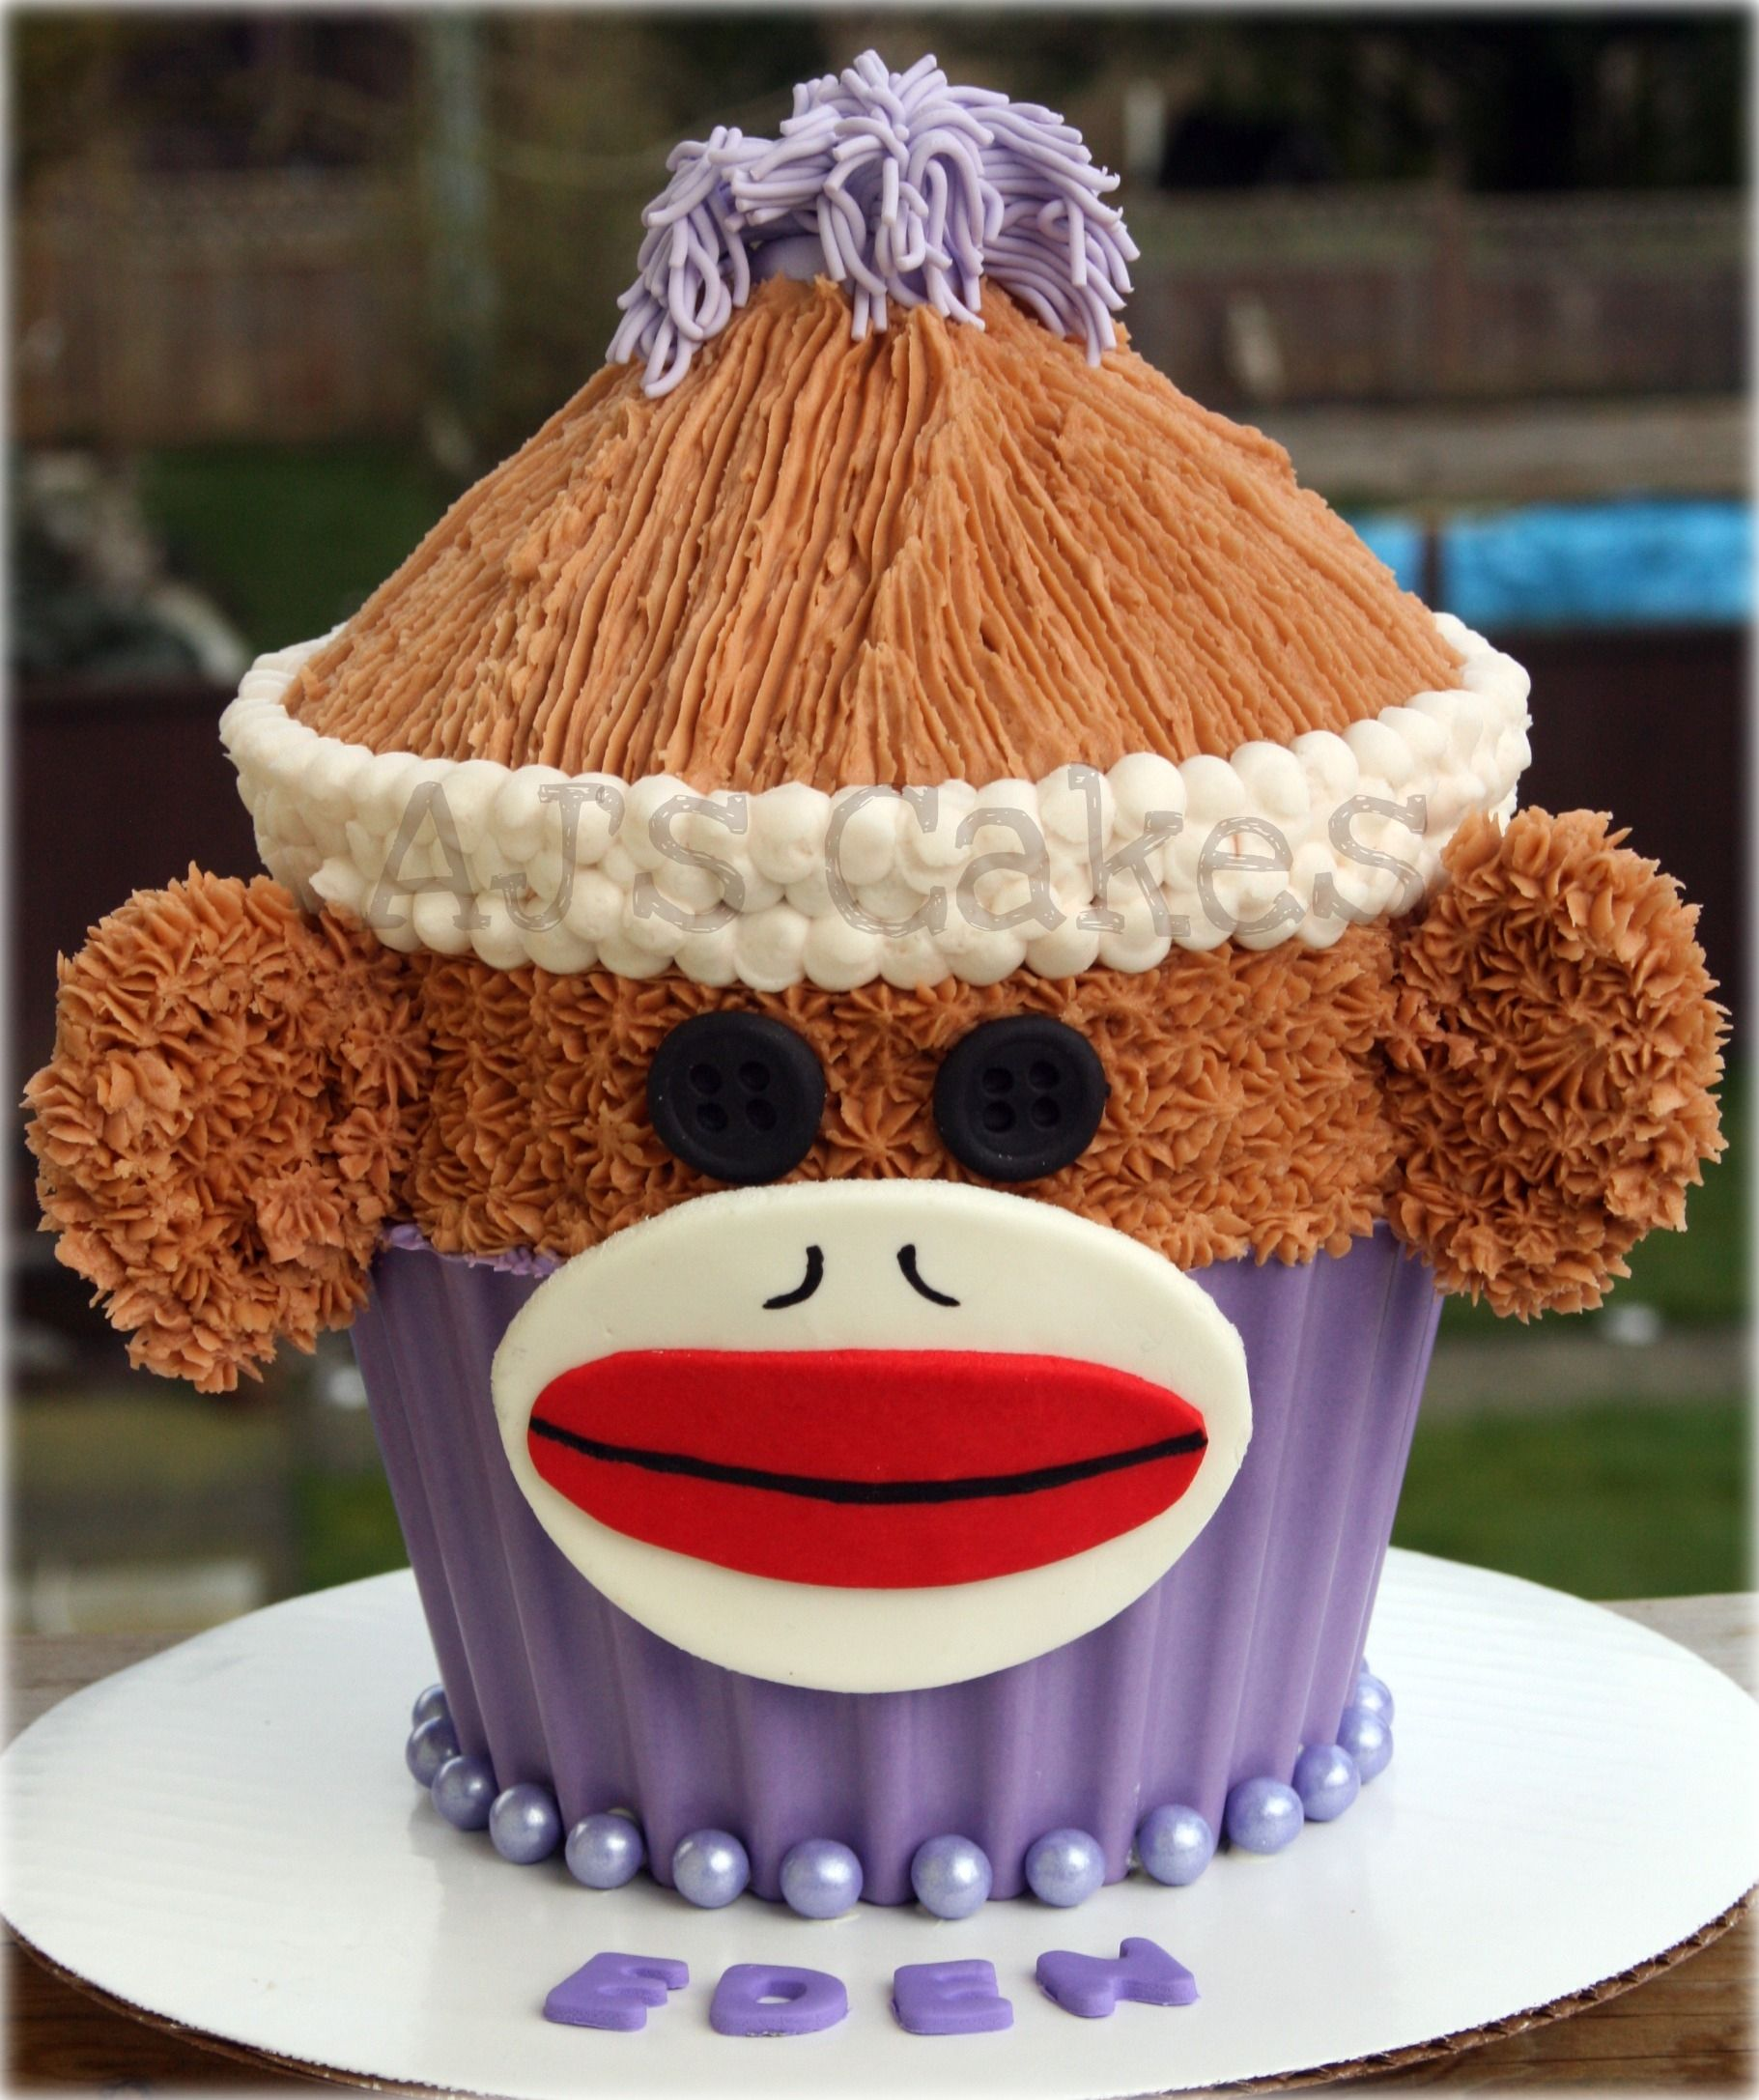 Sock Monkey Giant Cupcake super easy spin on the sock monkey giant cupcake style. Inspired by another cake design. I added button eyes and. & sock monkey giant cupcake - super easy spin on the sock monkey ...